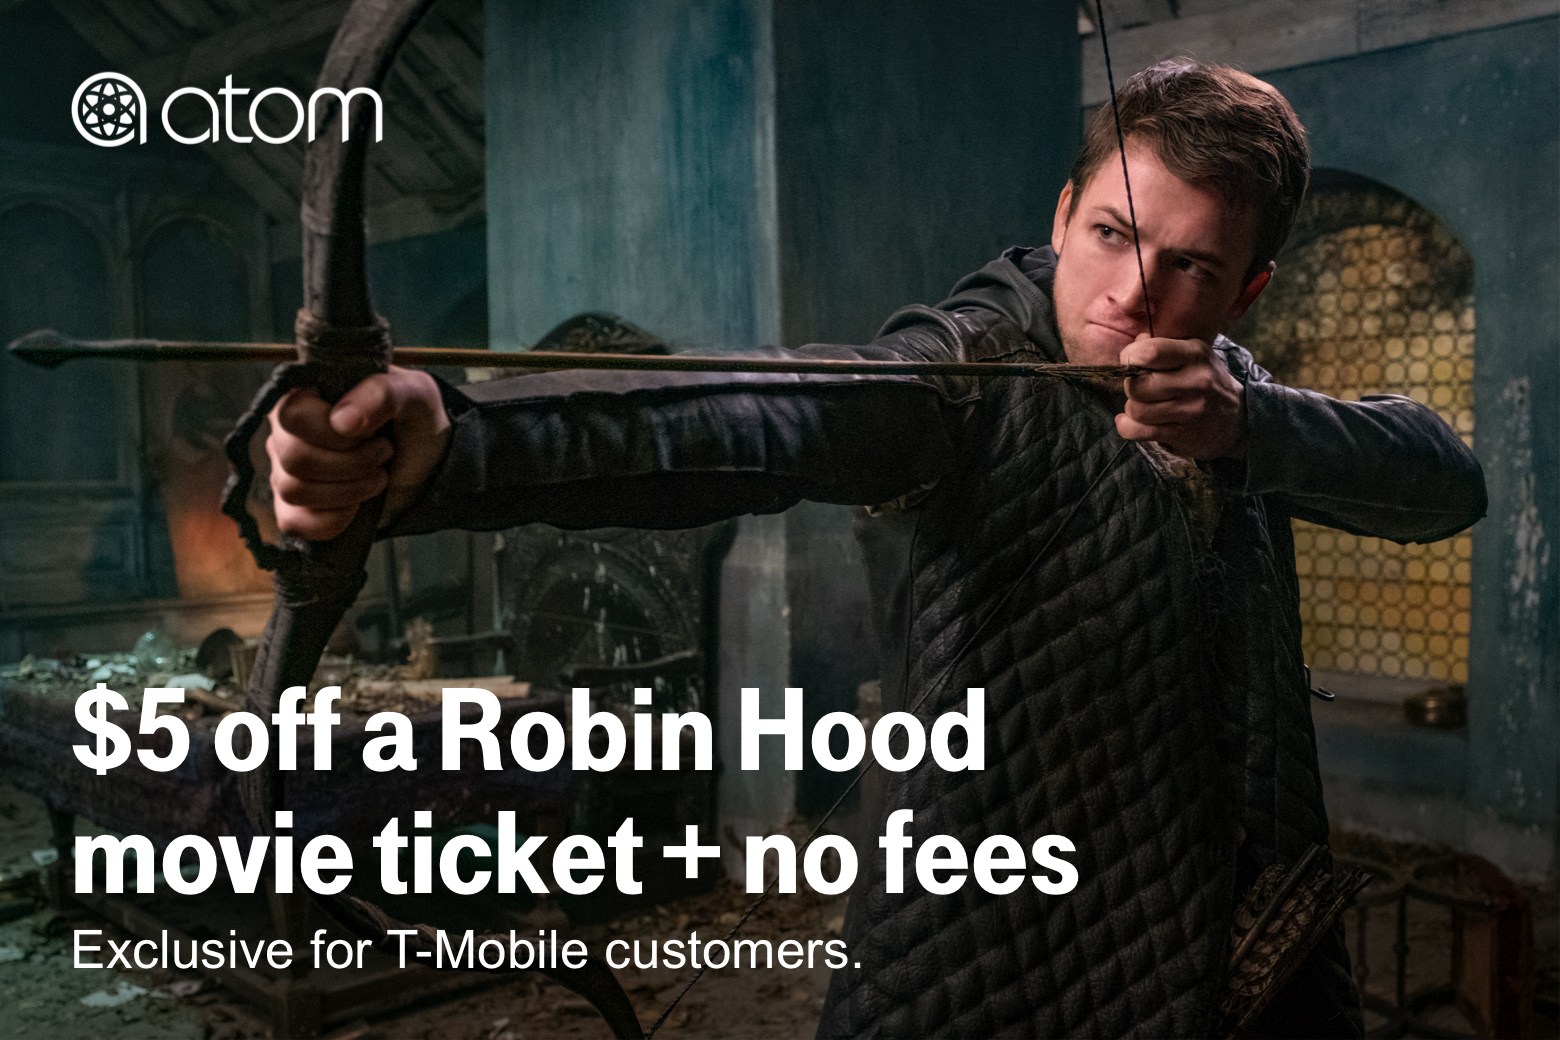 Atom. $5 off a Robin Hood movie ticket + no fees. Exclusive for T-Mobile customers.